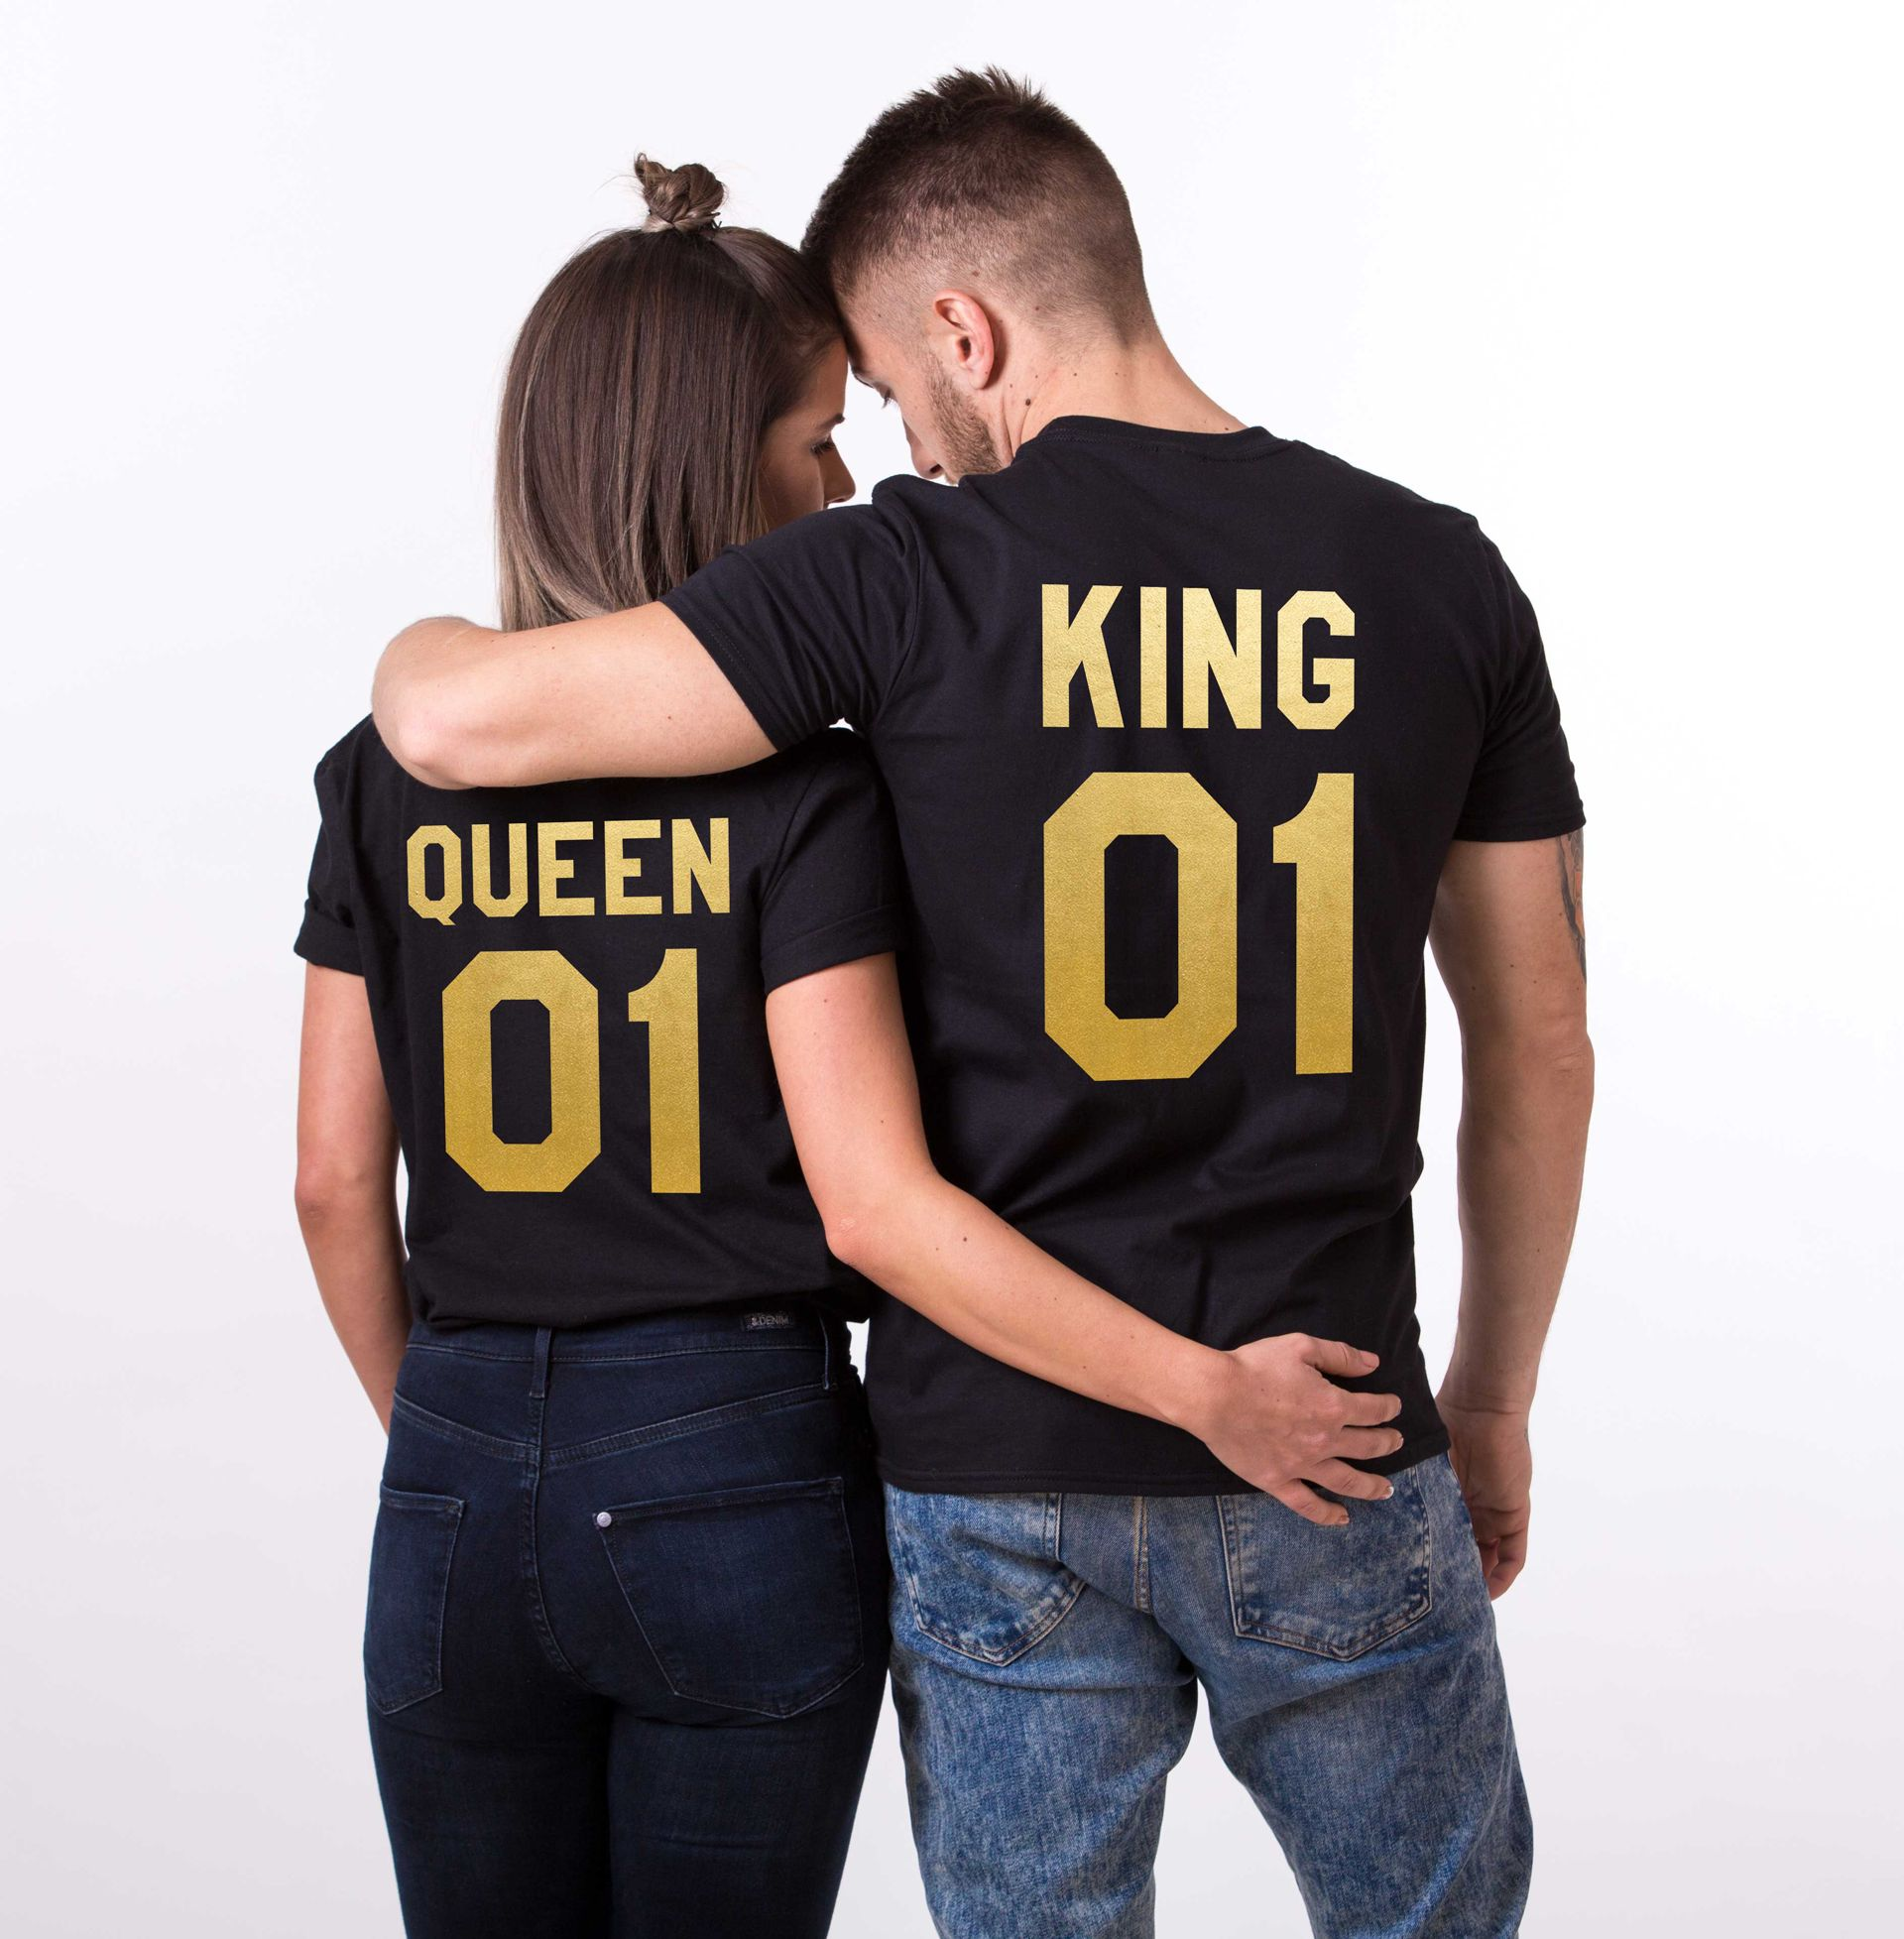 Queen King 01 Matching Couples Shirts Unisex Shirts